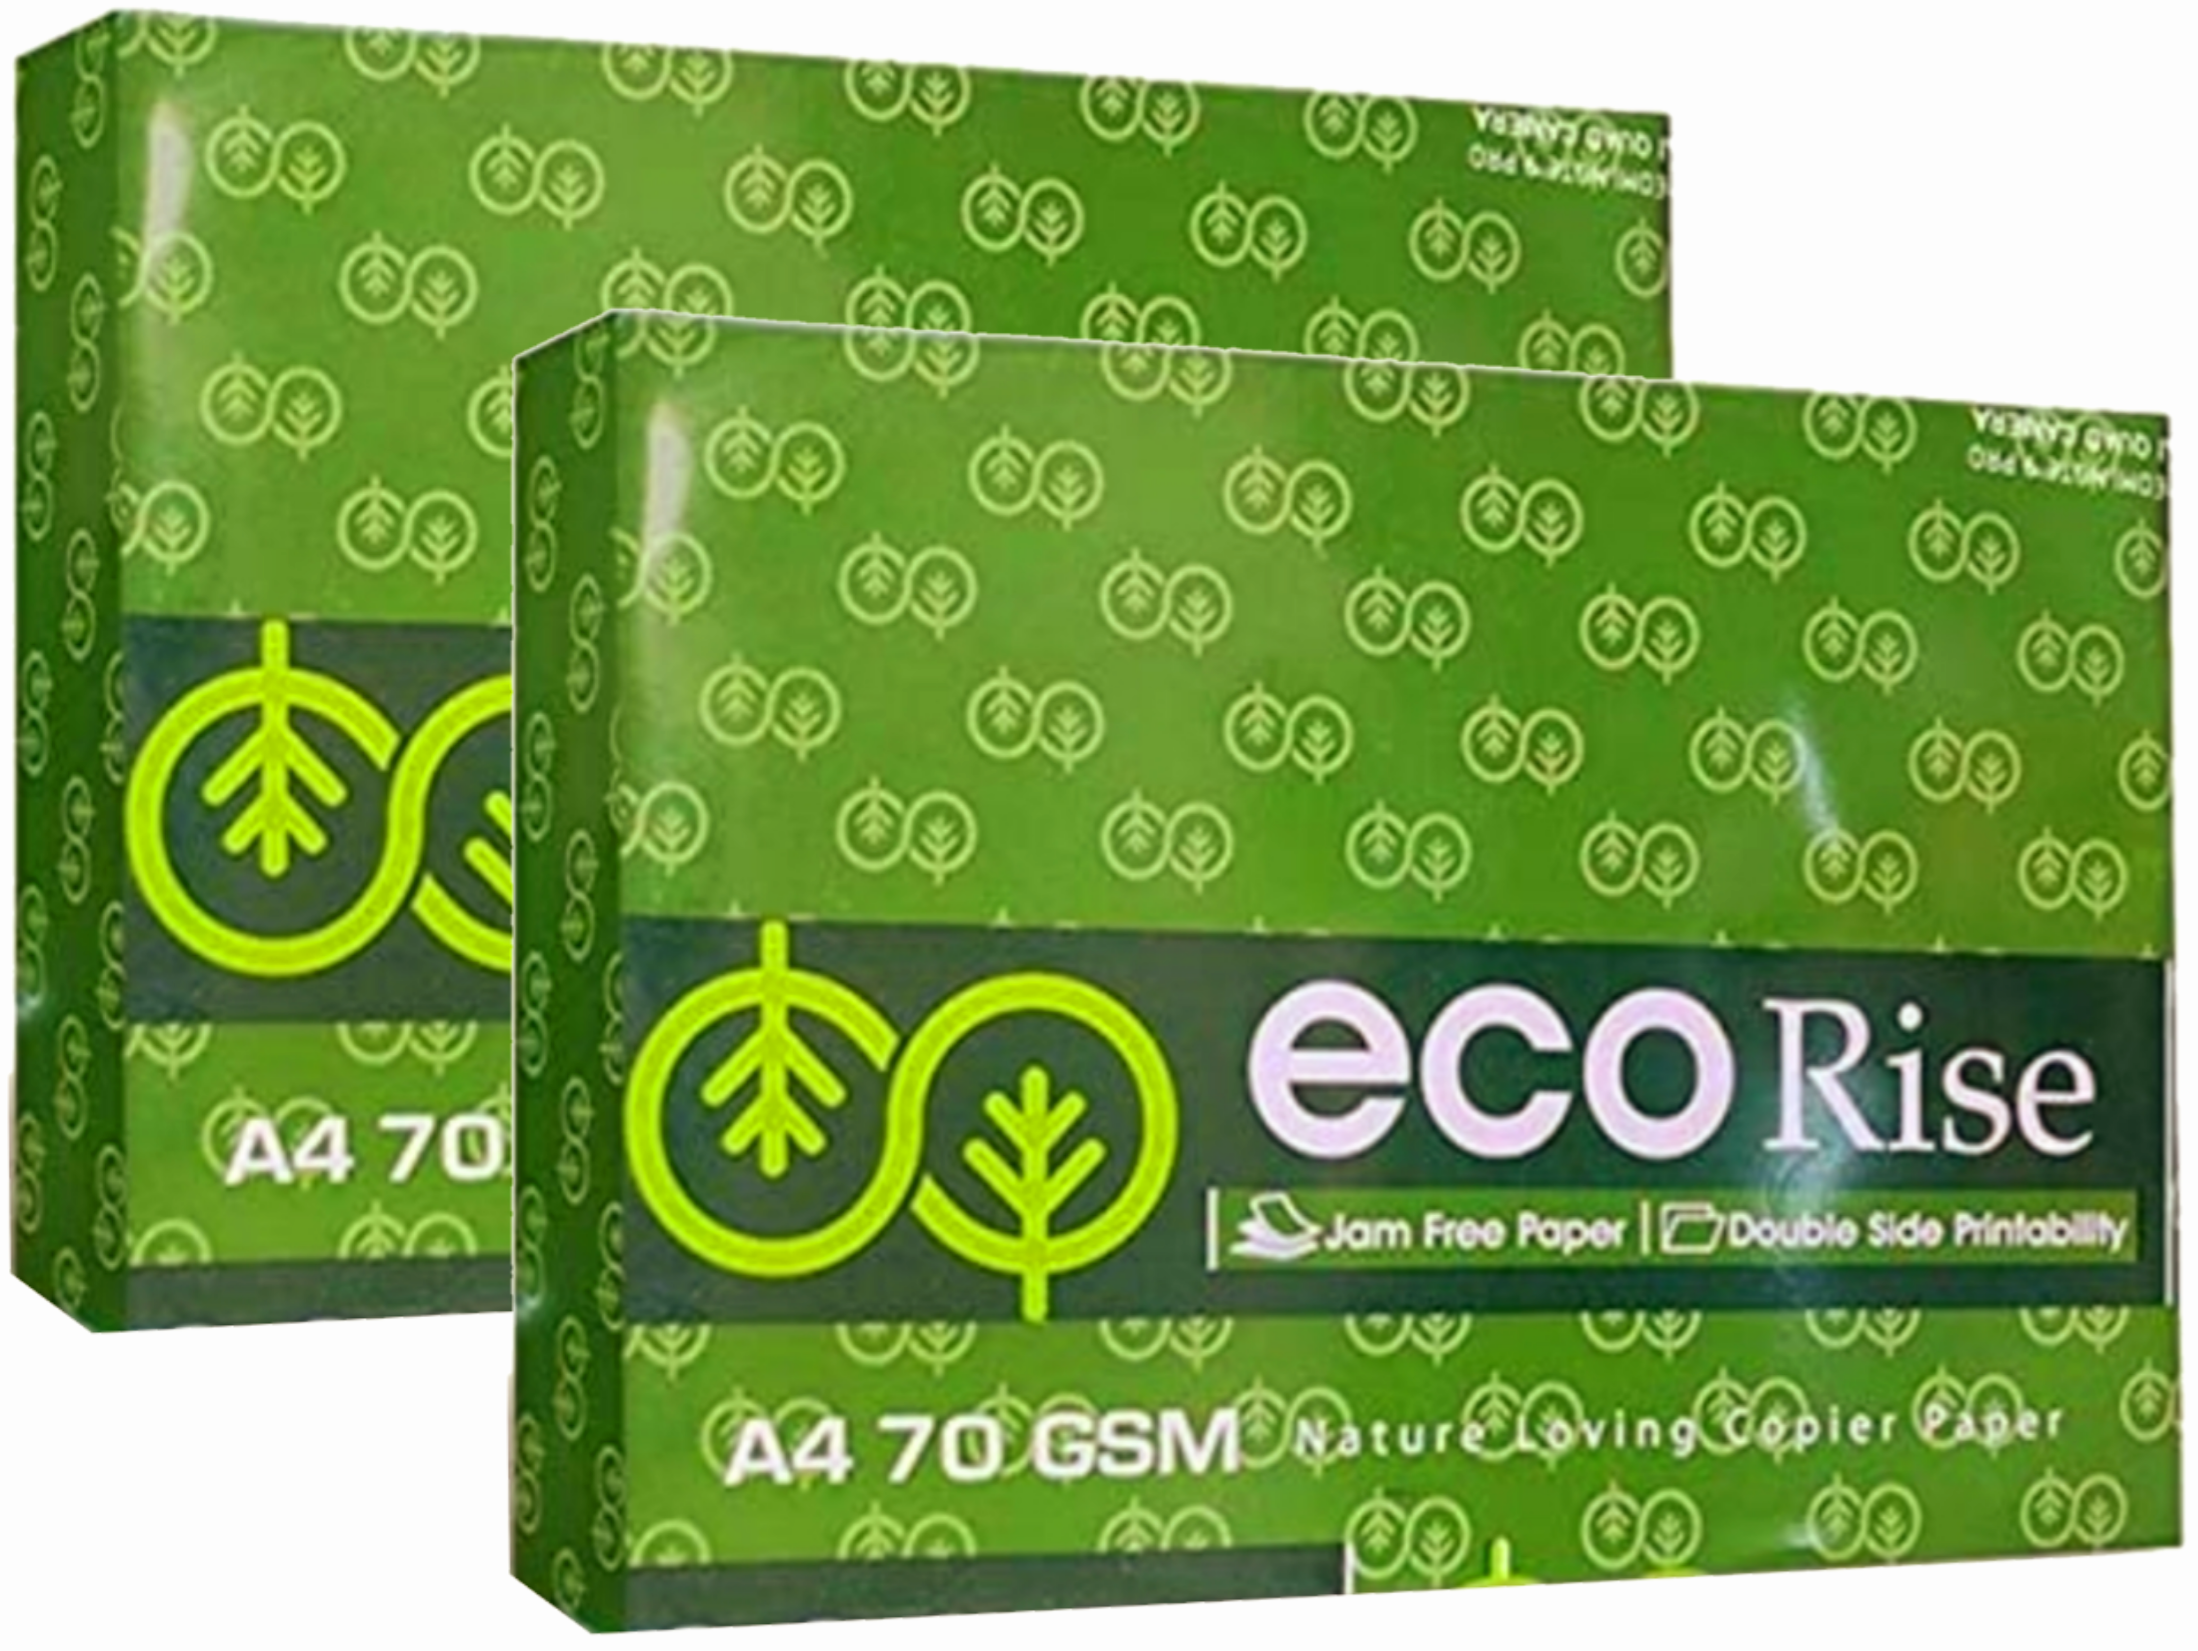 Eco Rise Printing Copy A4 Size JK Paper Eco Tree Friendly 70 GSM 500 Sheet Pack of 2